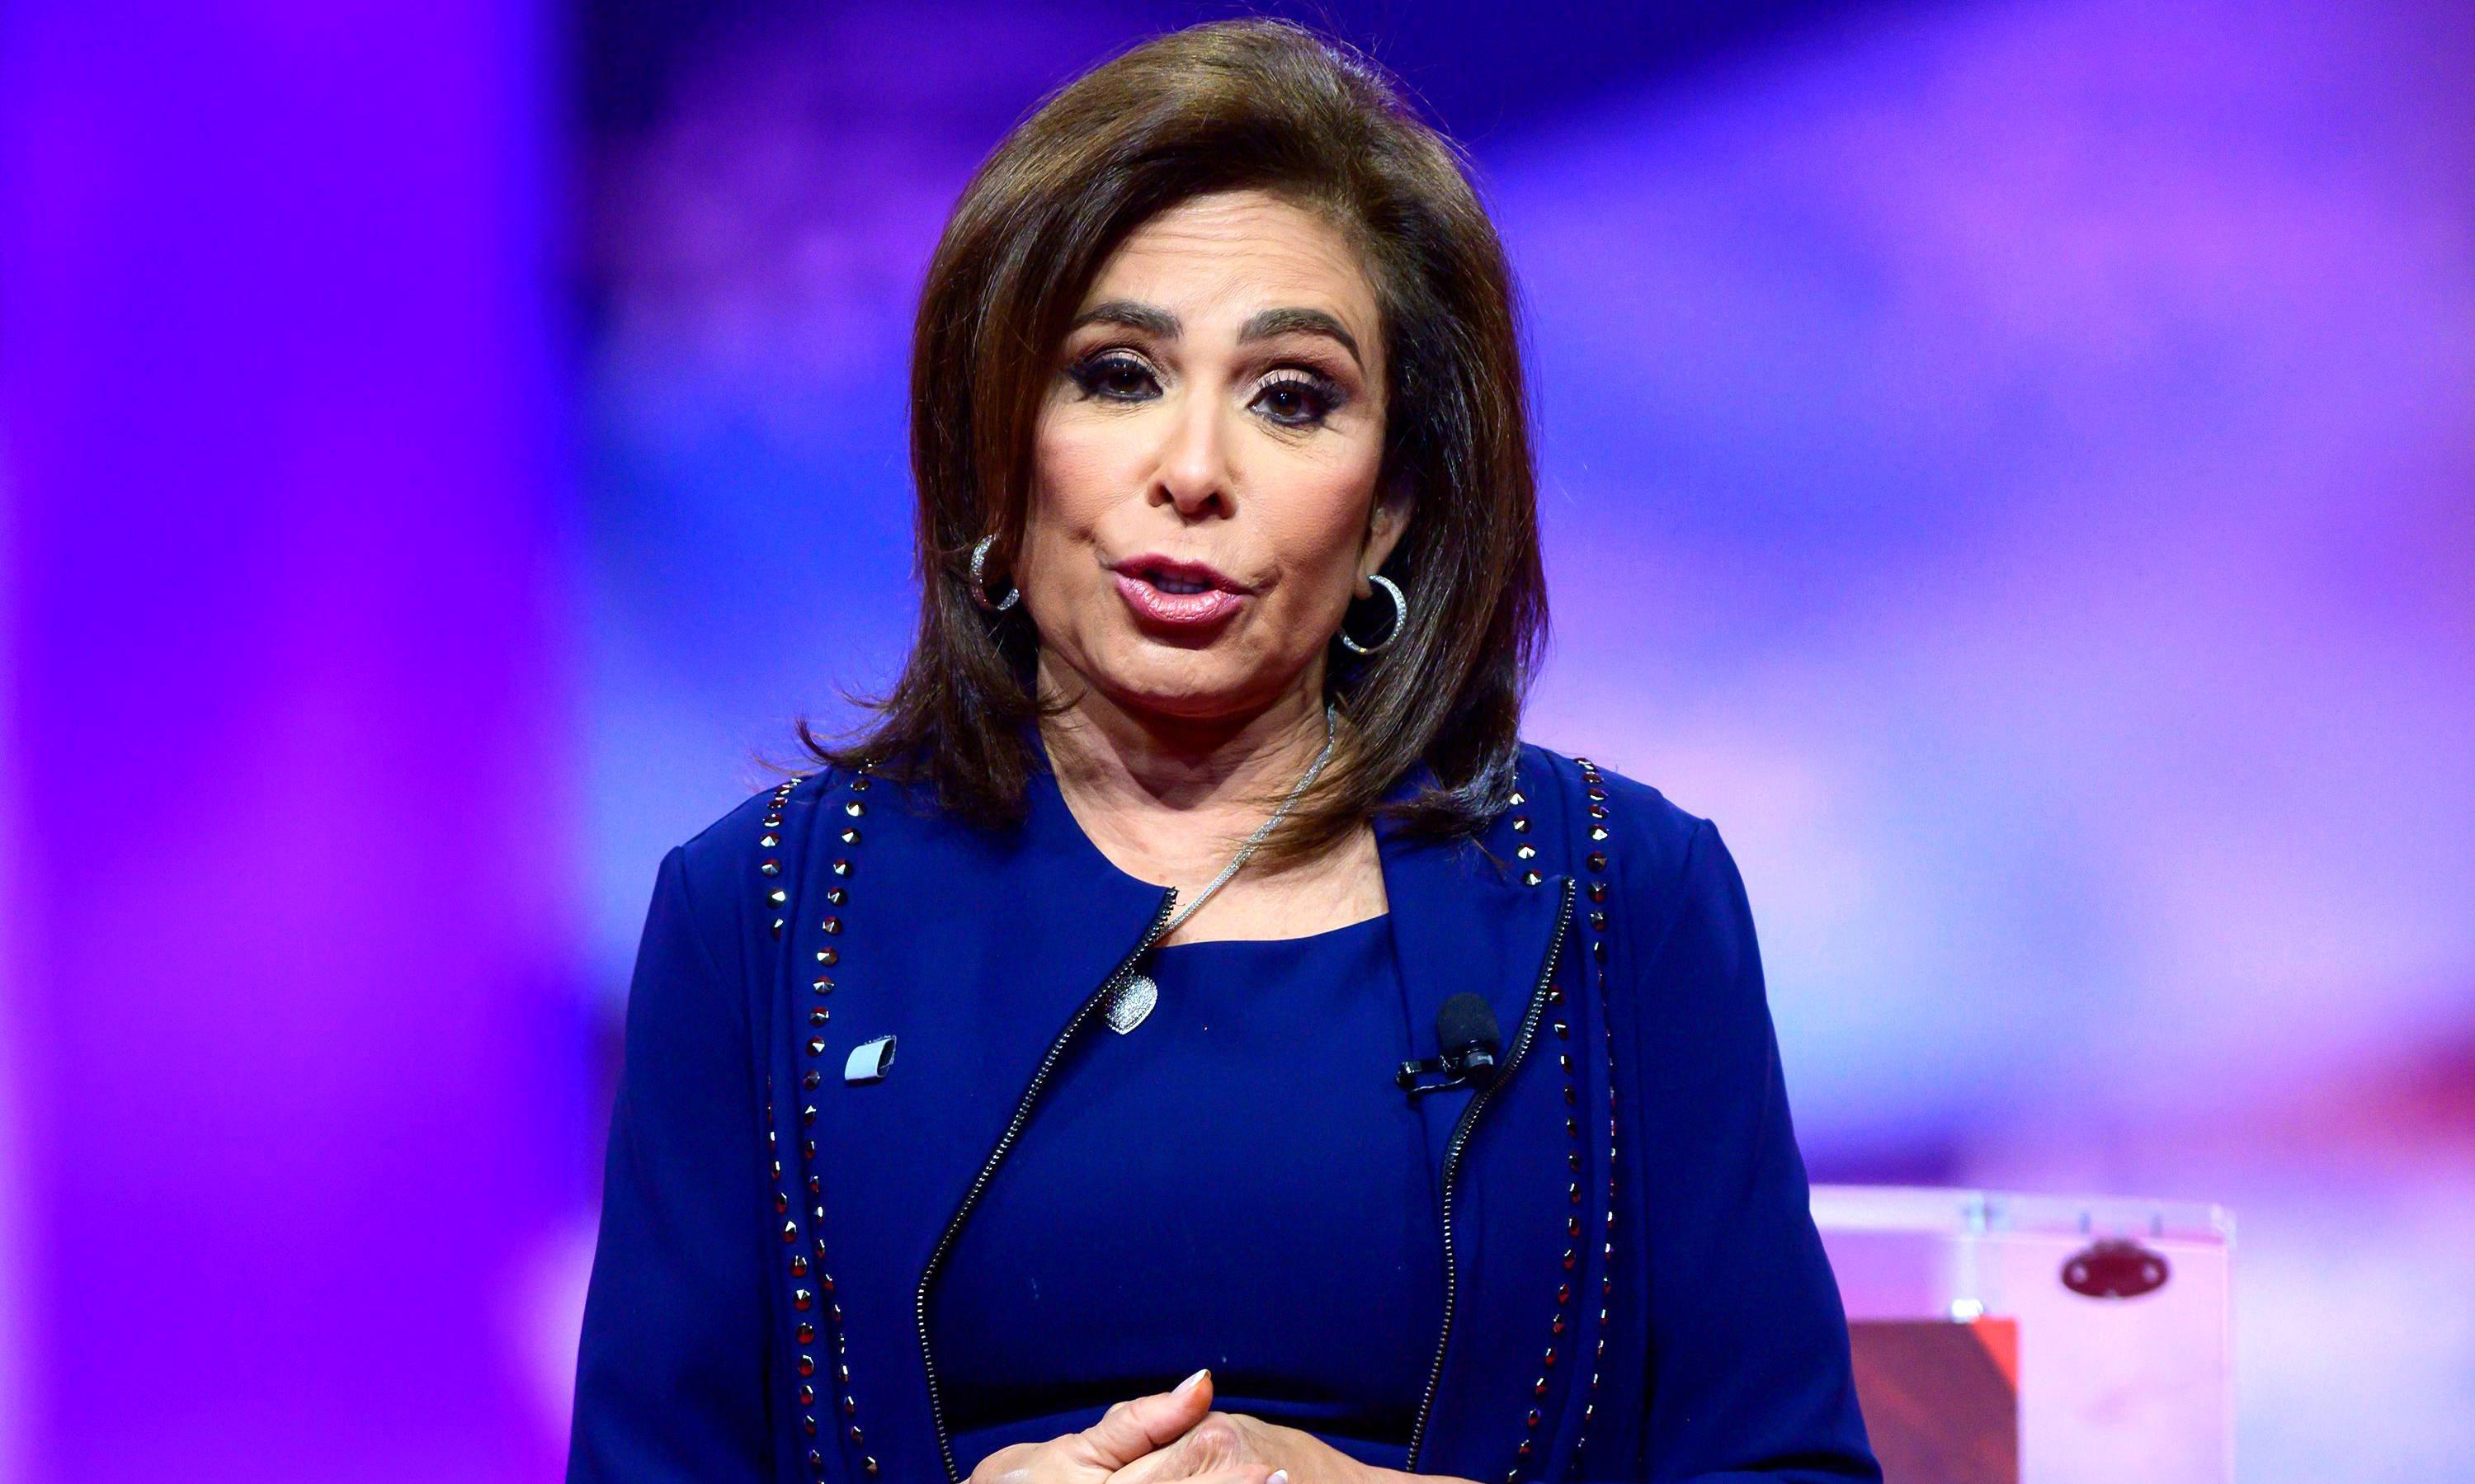 'Bring back Jeanine Pirro': Trump defends Fox host after show goes off air